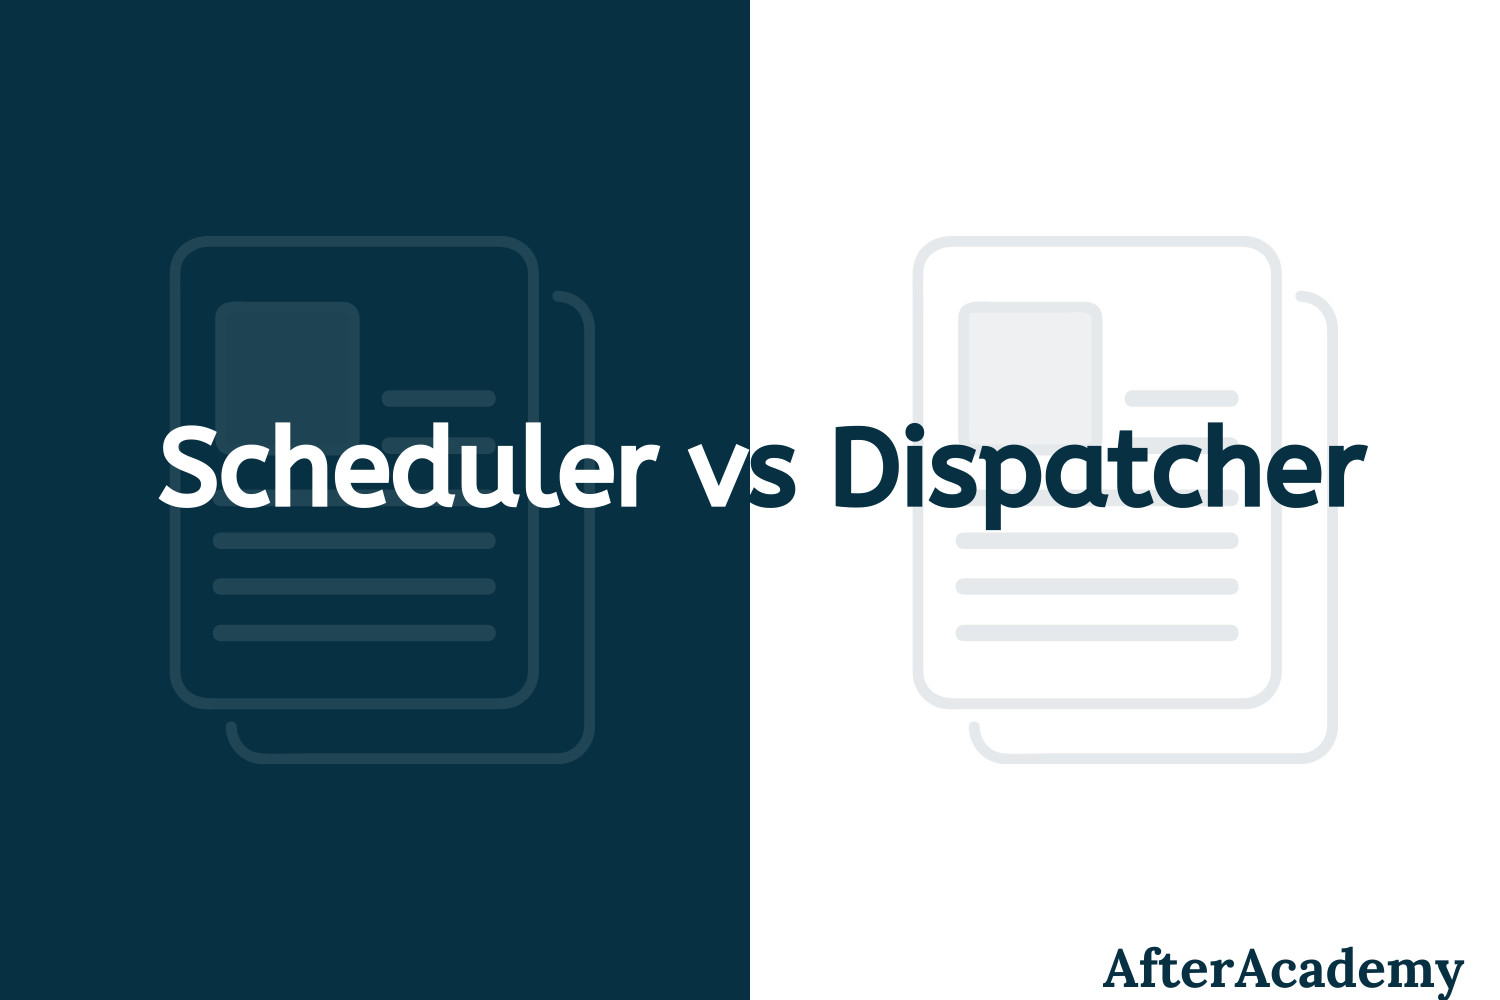 Difference between Scheduler and Dispatcher